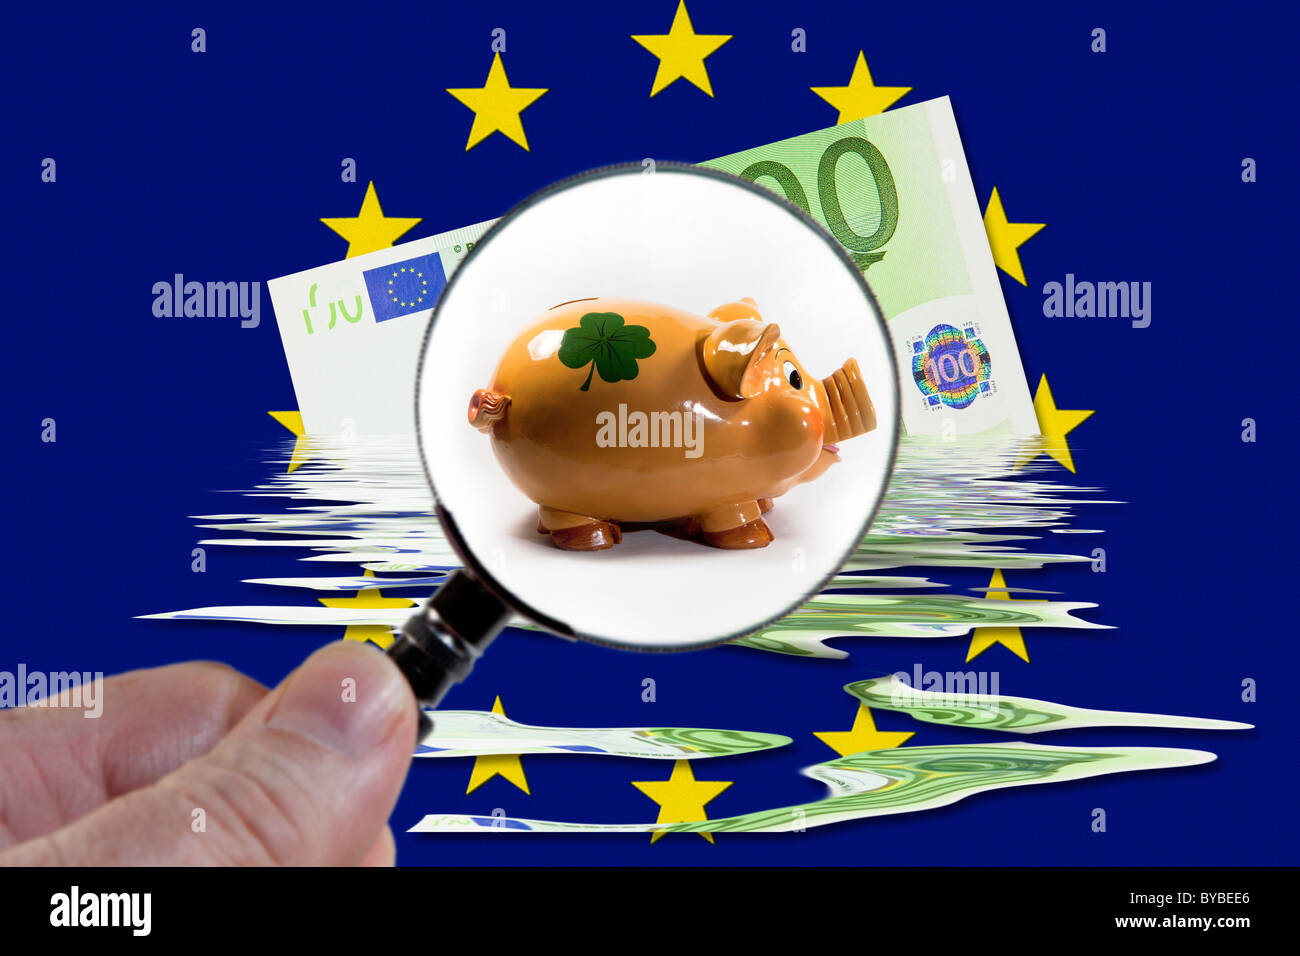 Symbolic image for money saving in the European Union - Stock Image